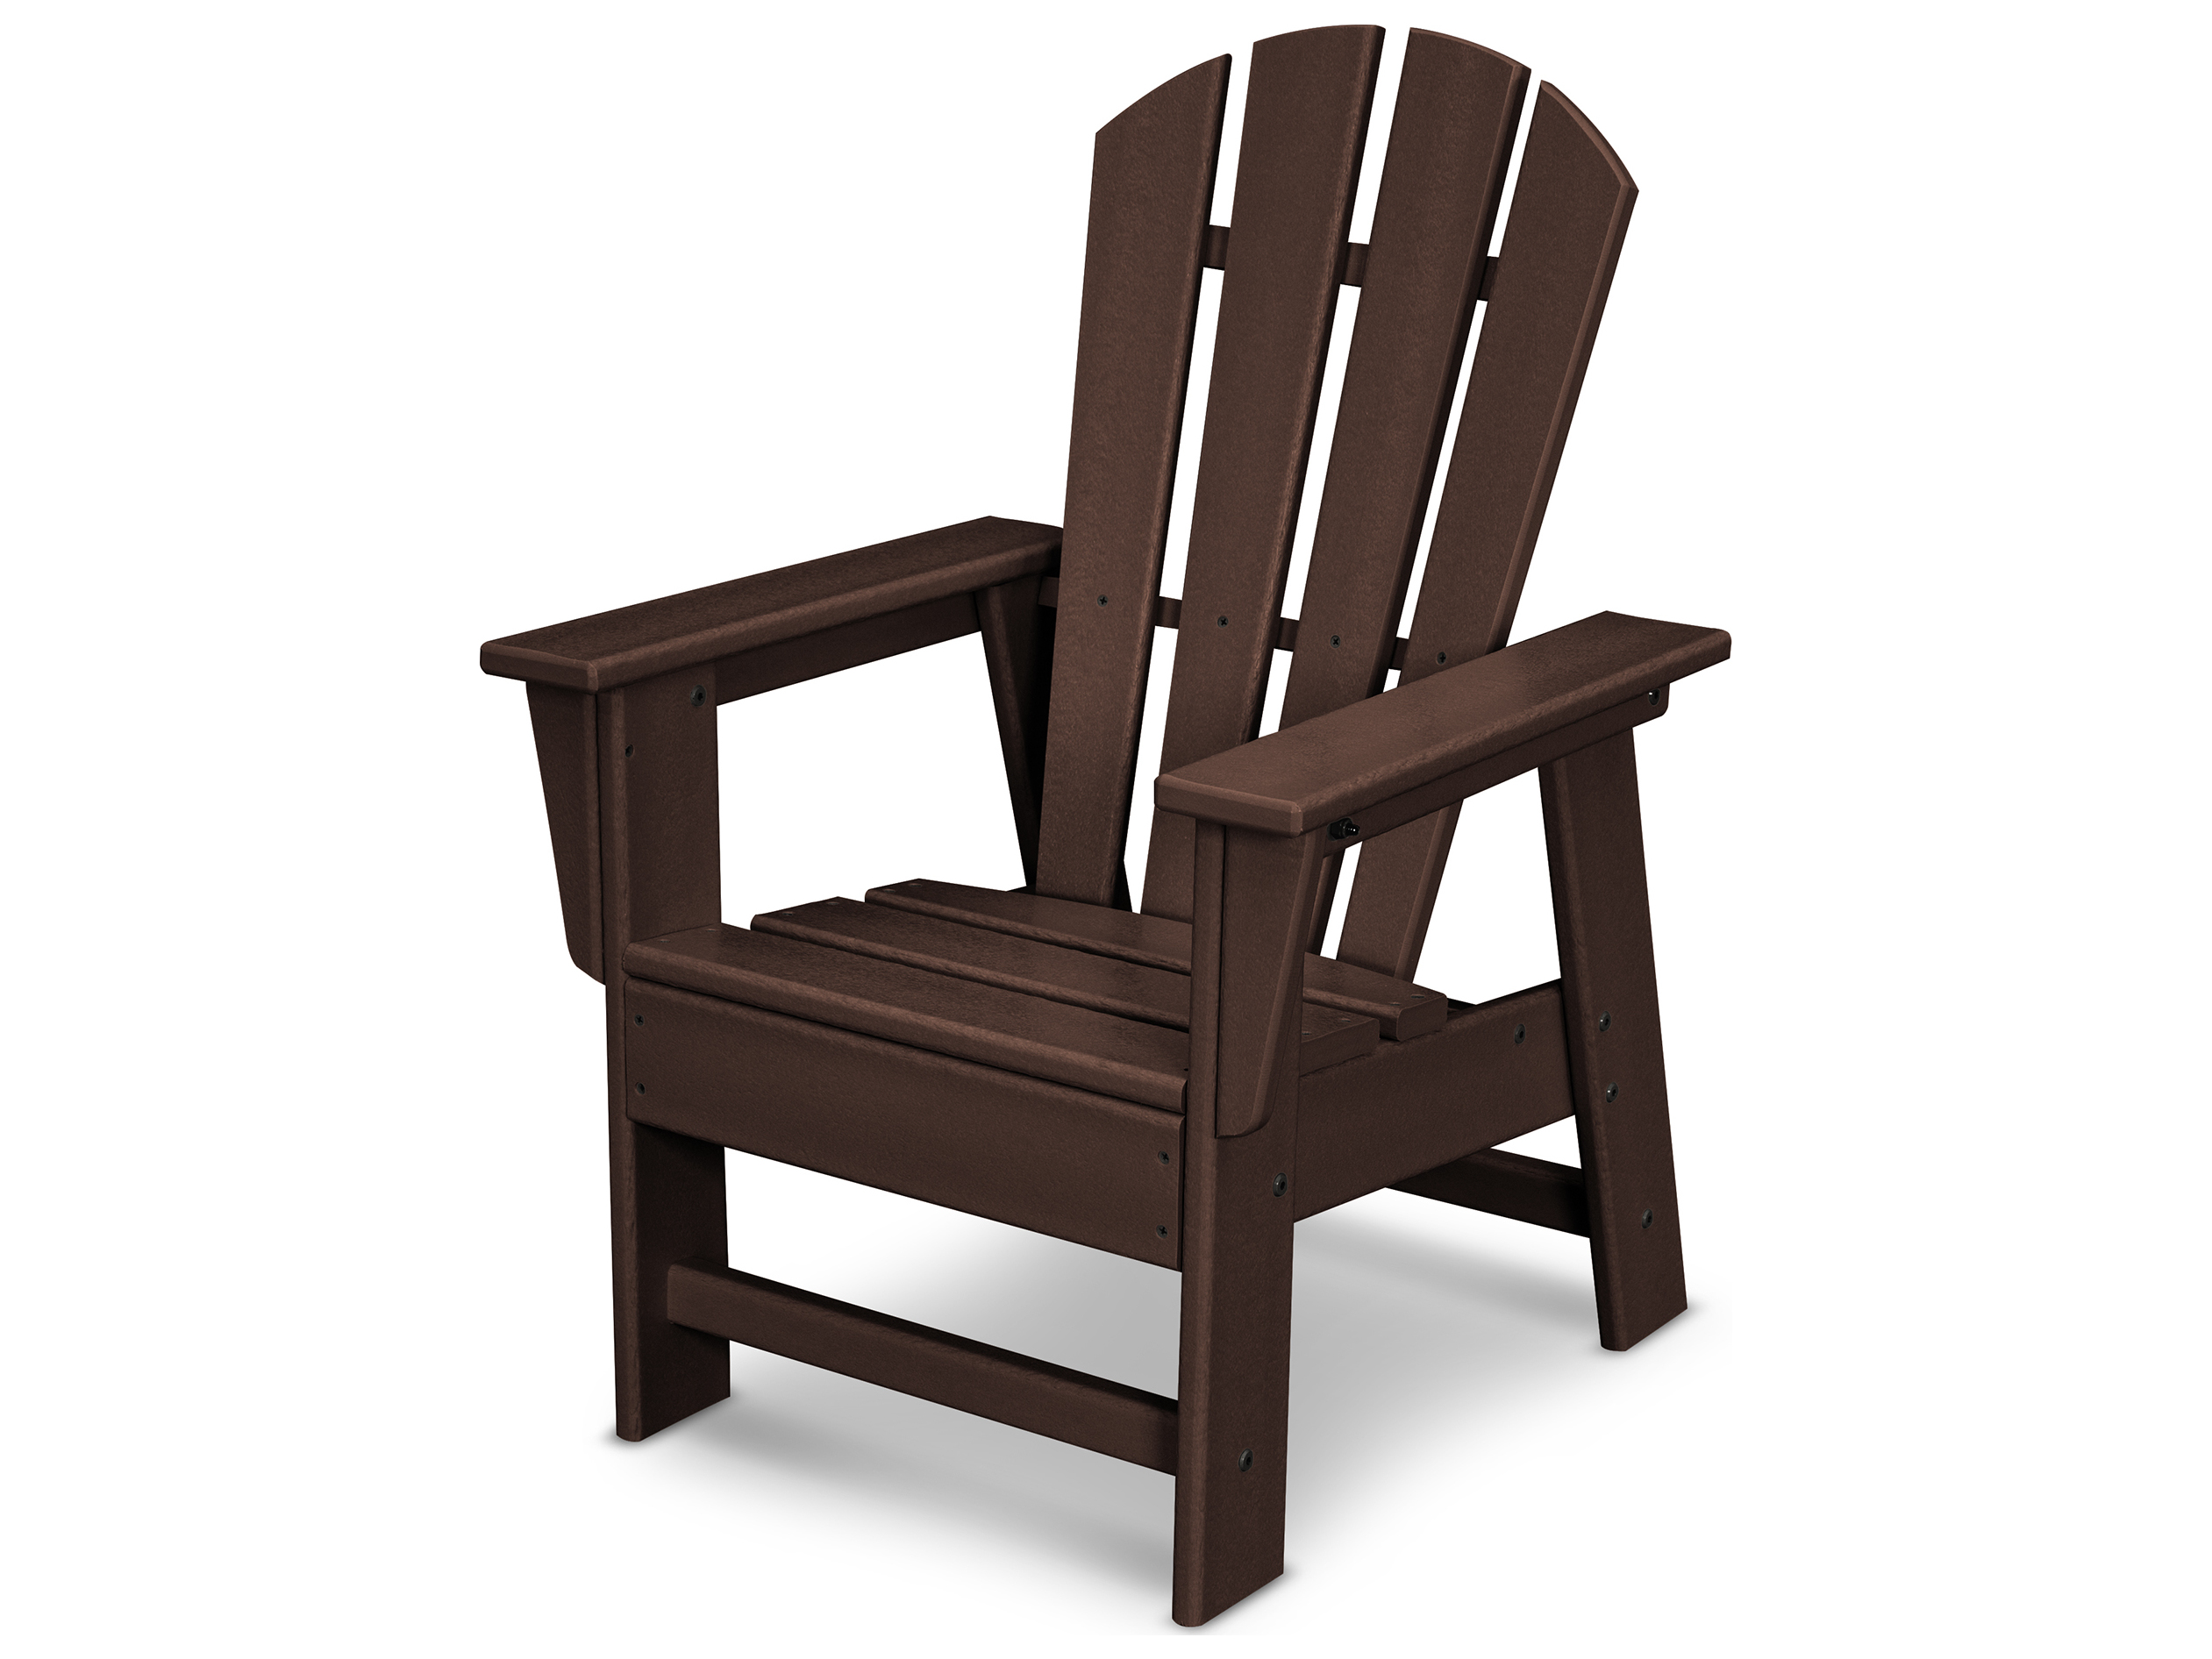 Adirondack Chair Plastic Polywood South Beach Recycled Plastic Child Size